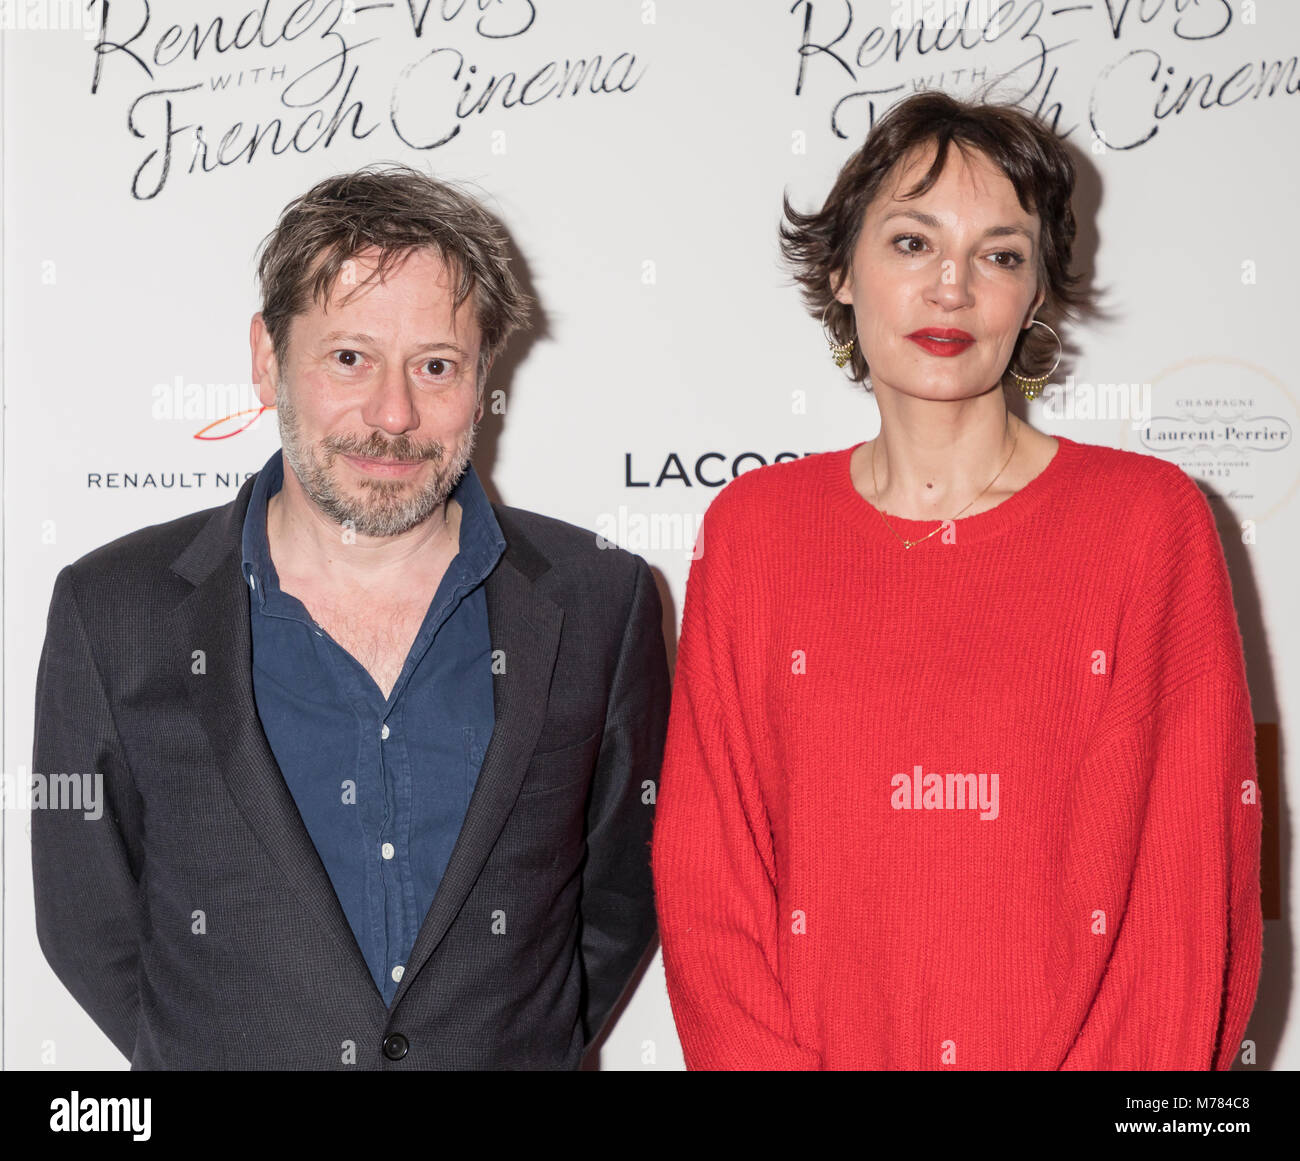 New York, NY, USA - March 8, 2018: Mathieu Amalric and Jeanne Balibar attend Renez-Vous with French Cinema Opening - Stock Image